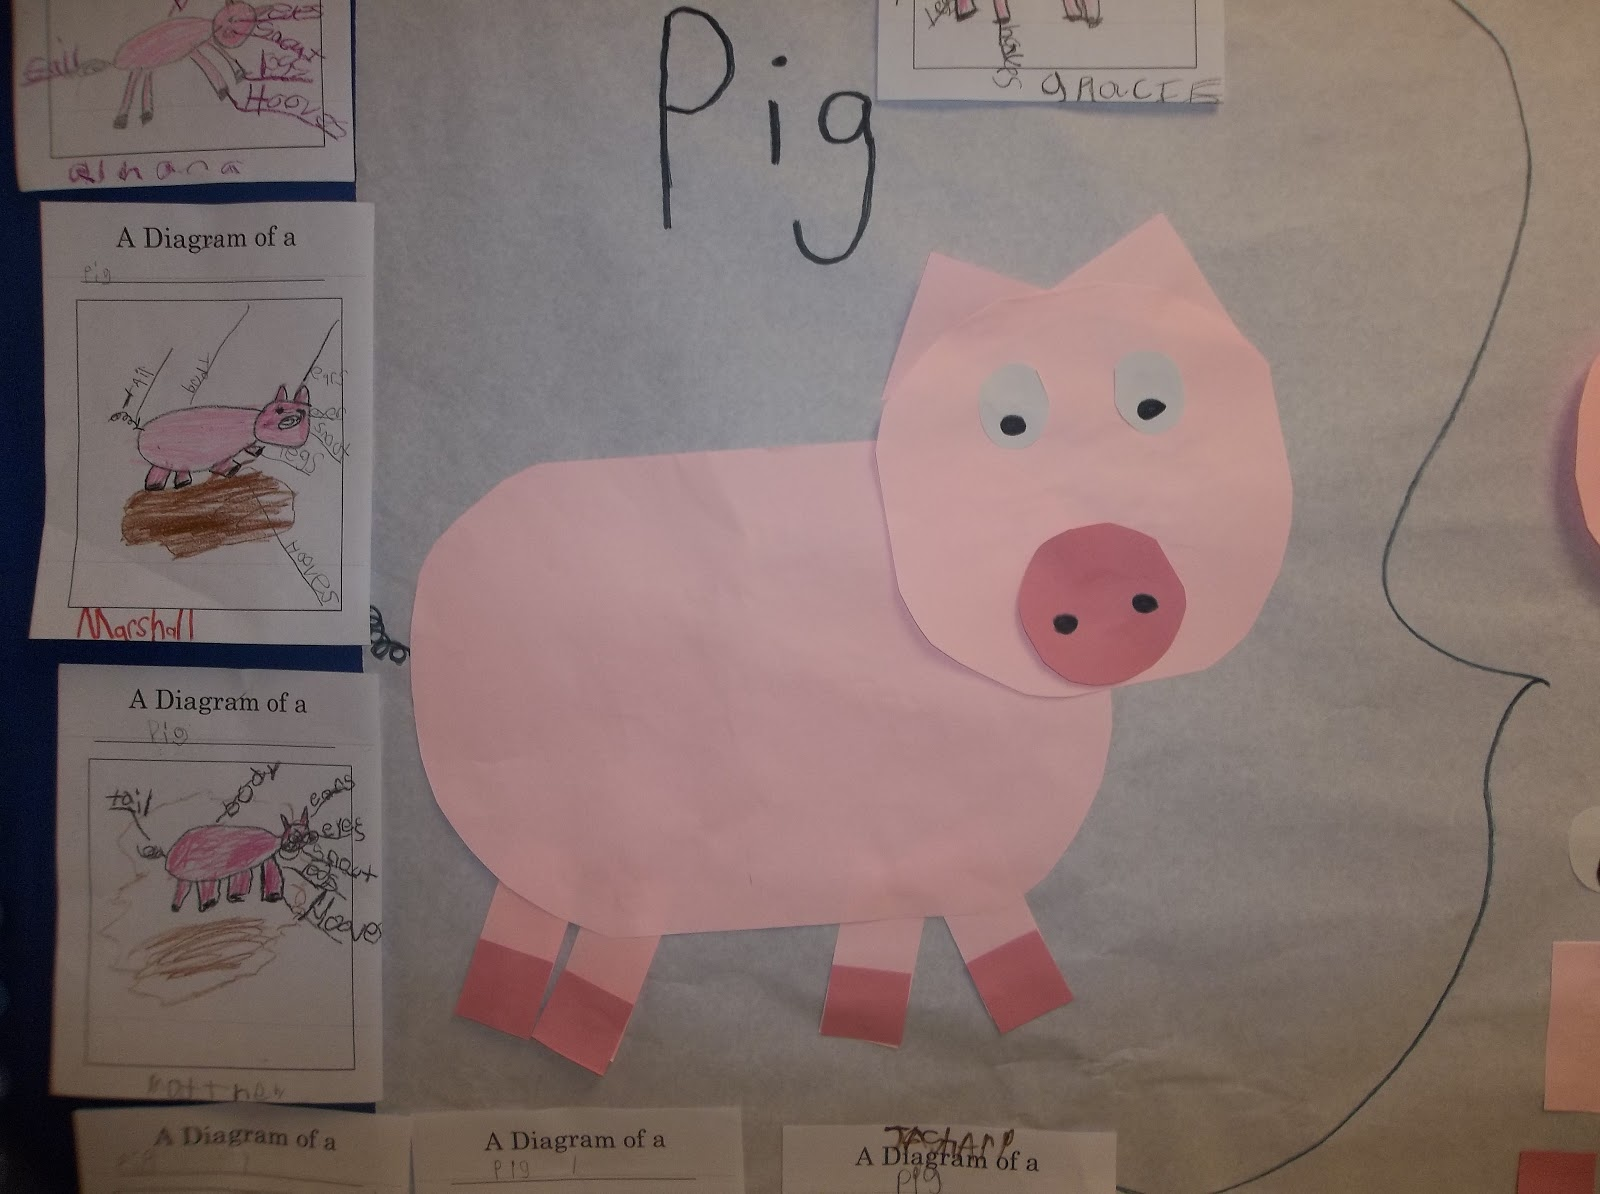 medium resolution of we created a class brace map that show the body parts of a pig then the students created and labeled their own diagram of a pig s body parts